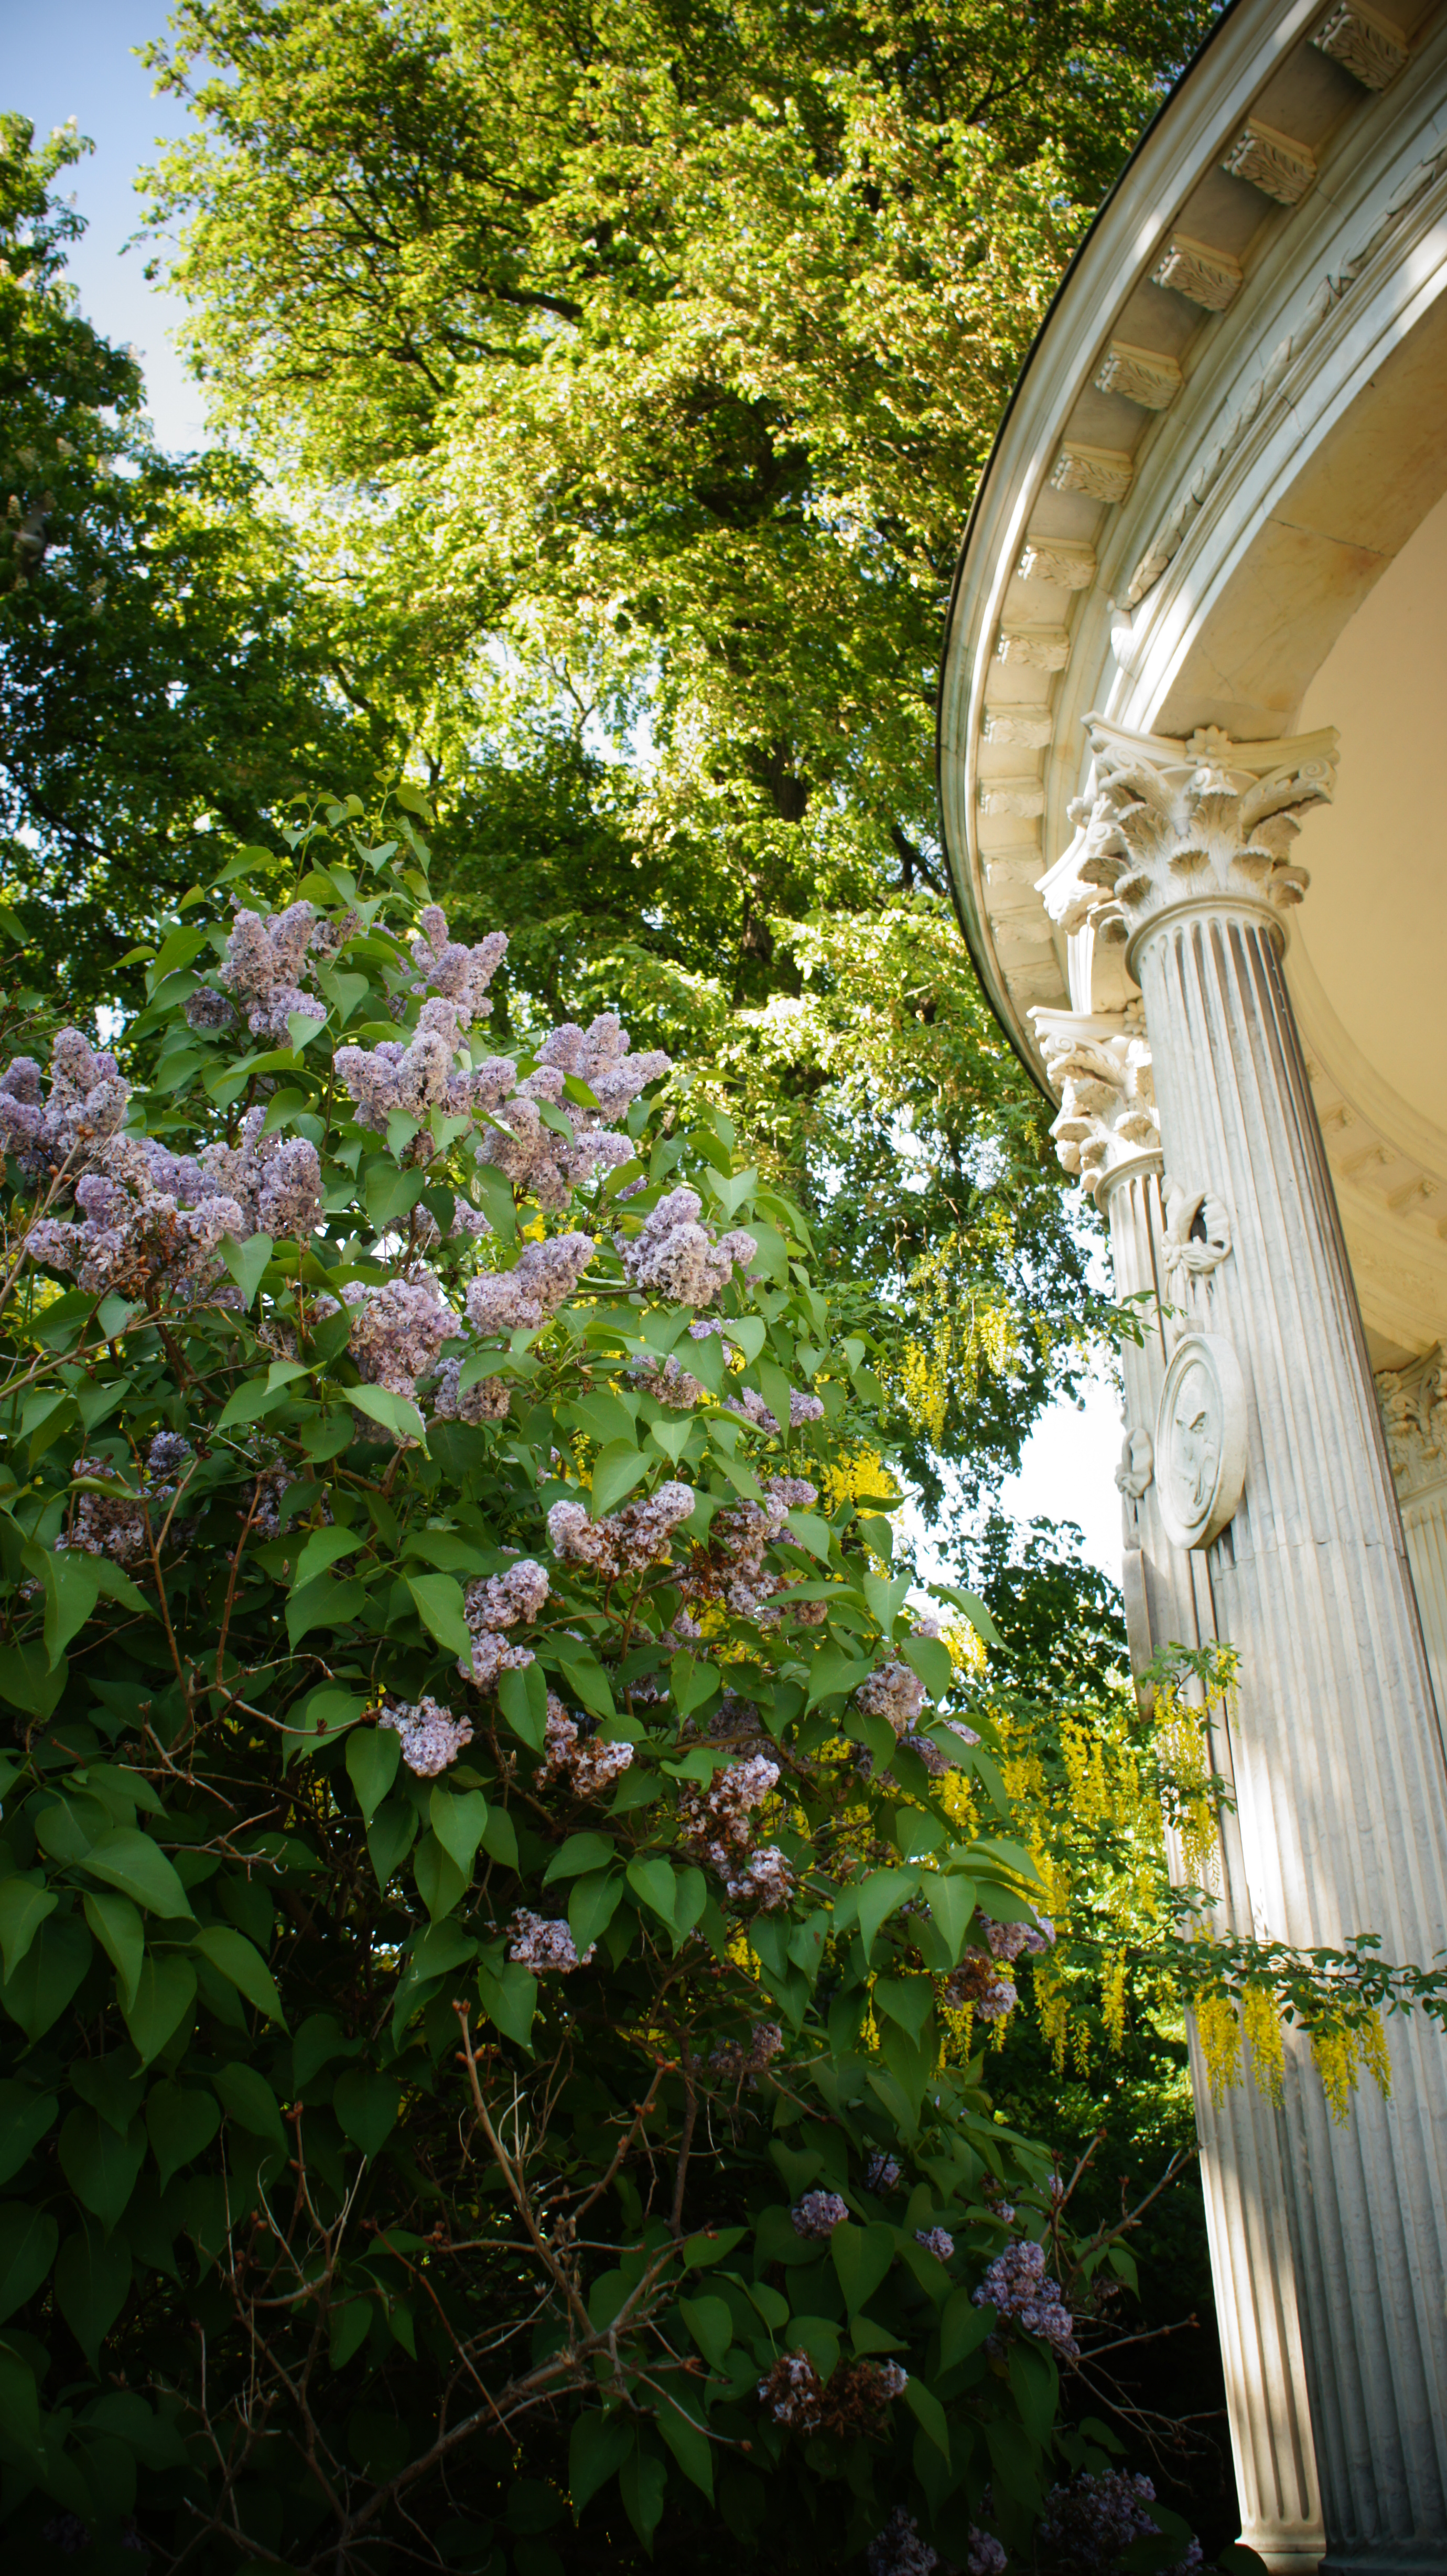 Potsdam's palace are extensive and wonderful, but so are their gardens. Even if you only have time walk around the beautiful greenery, the experience is highly recommended.